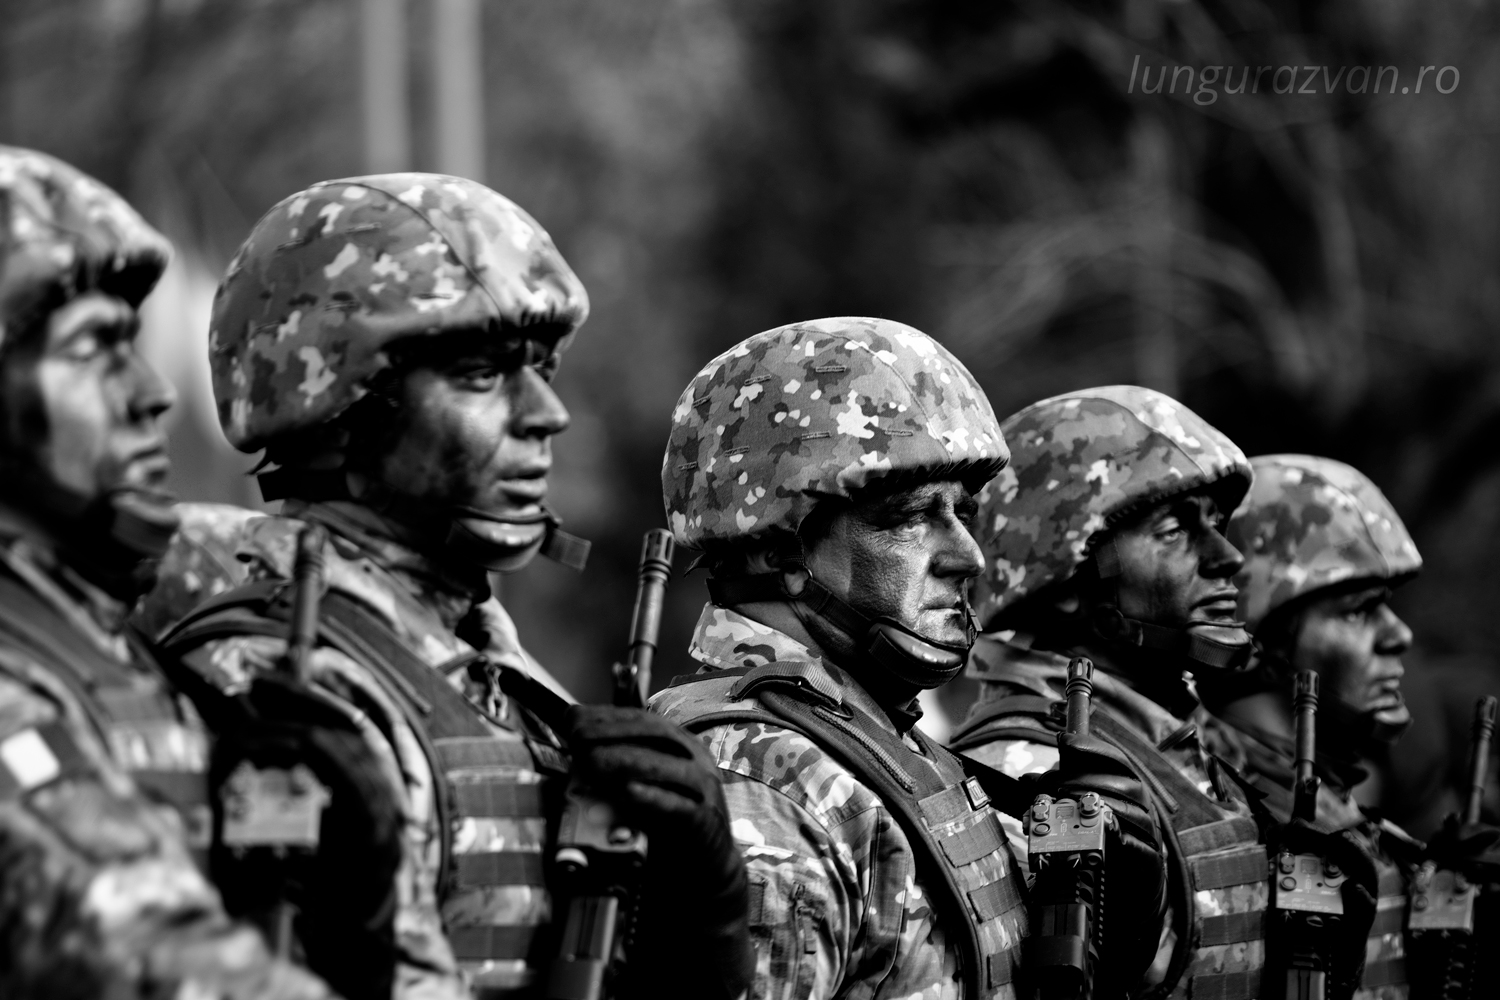 Brave Men, soldiers ready for battle in black and white